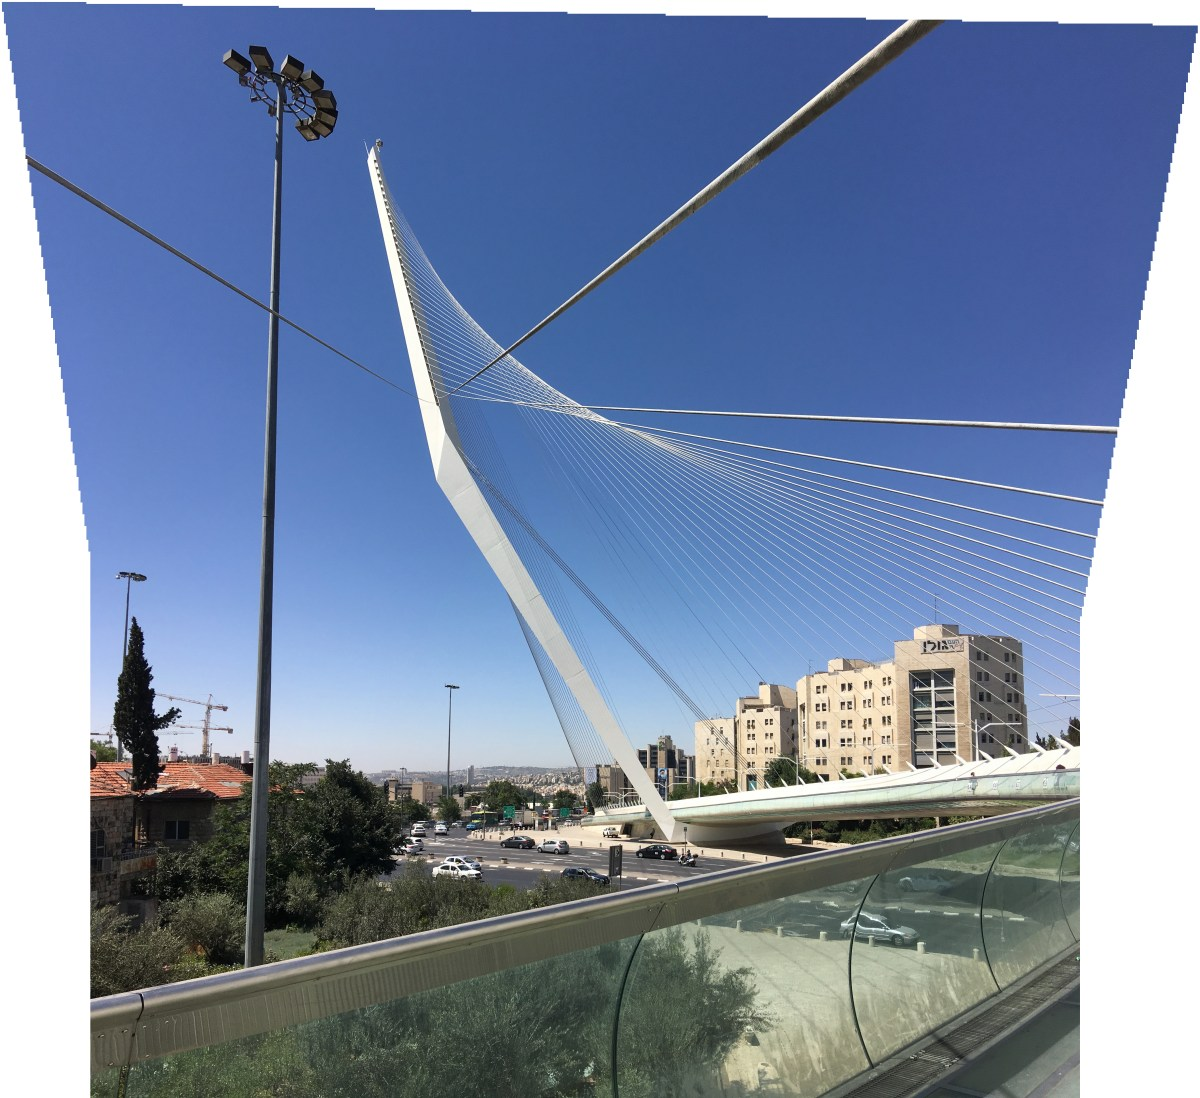 Chord Bridge, Jerusalem. Copyright Ruth and Rick Meghiddo, 2016. All Rights Reserved.